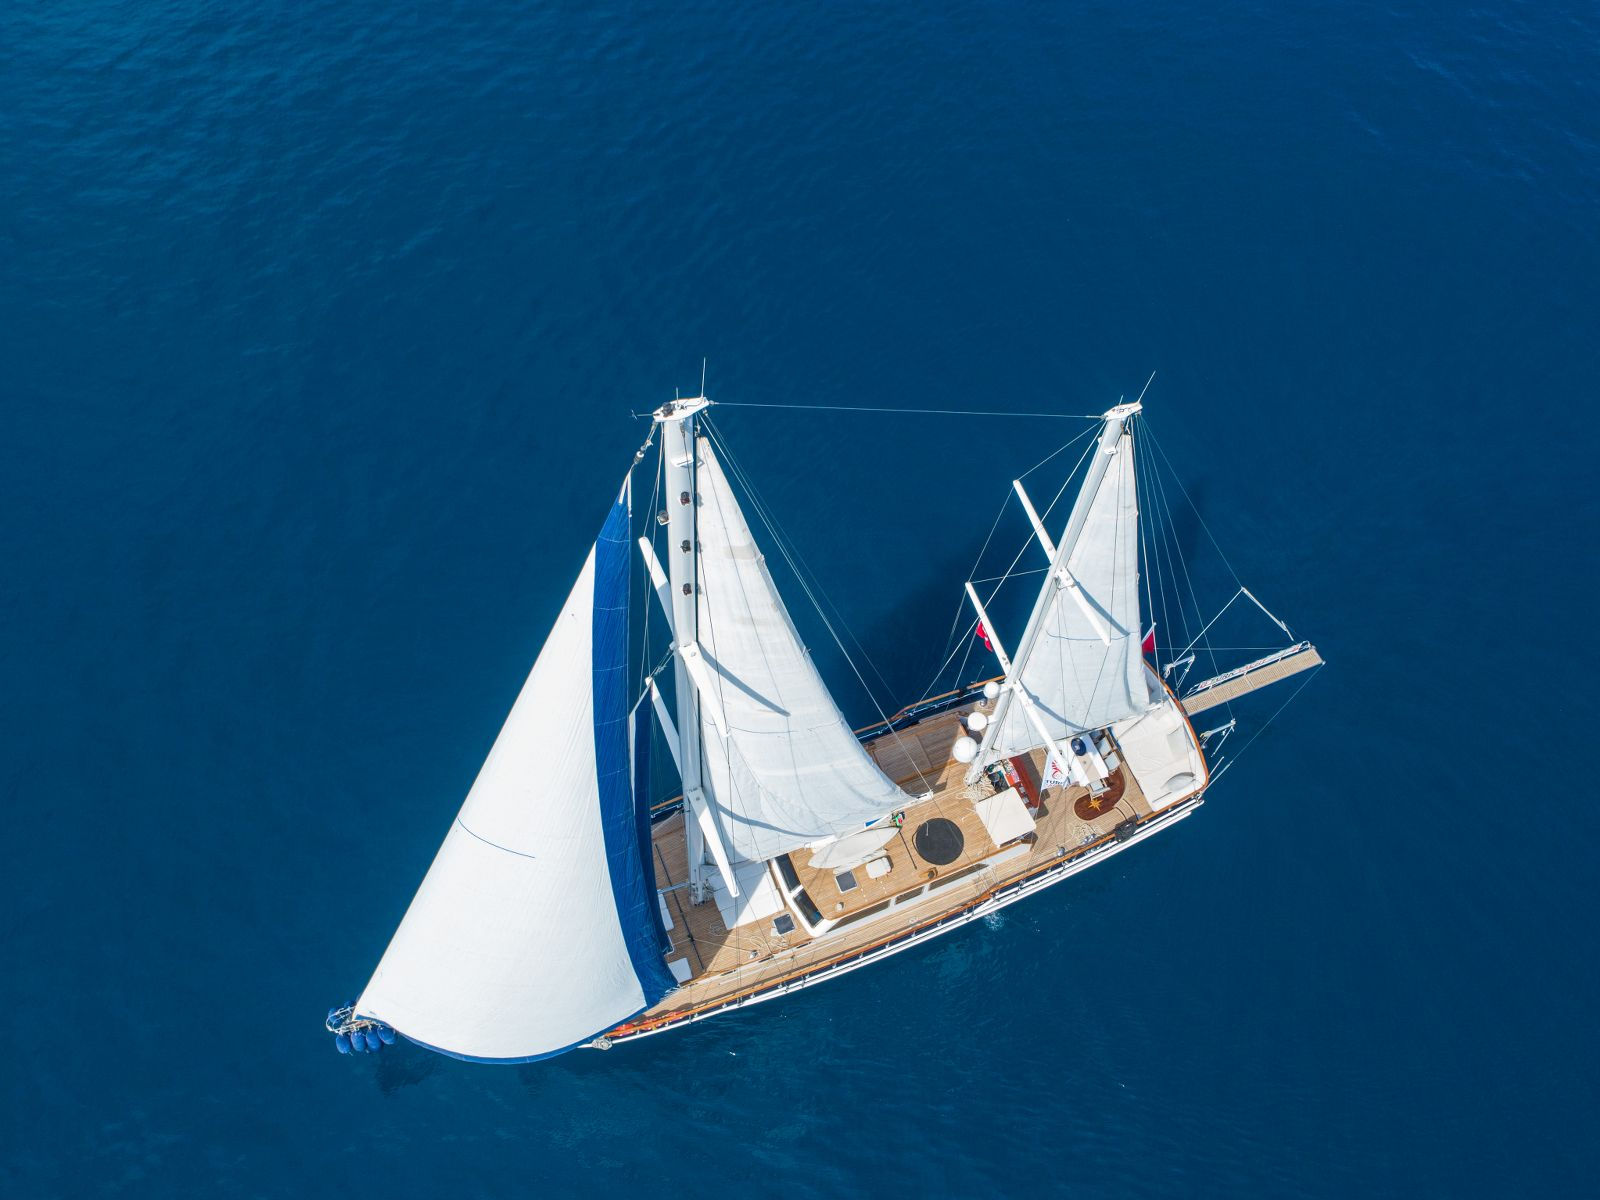 Aerial Shot Of The Yacht